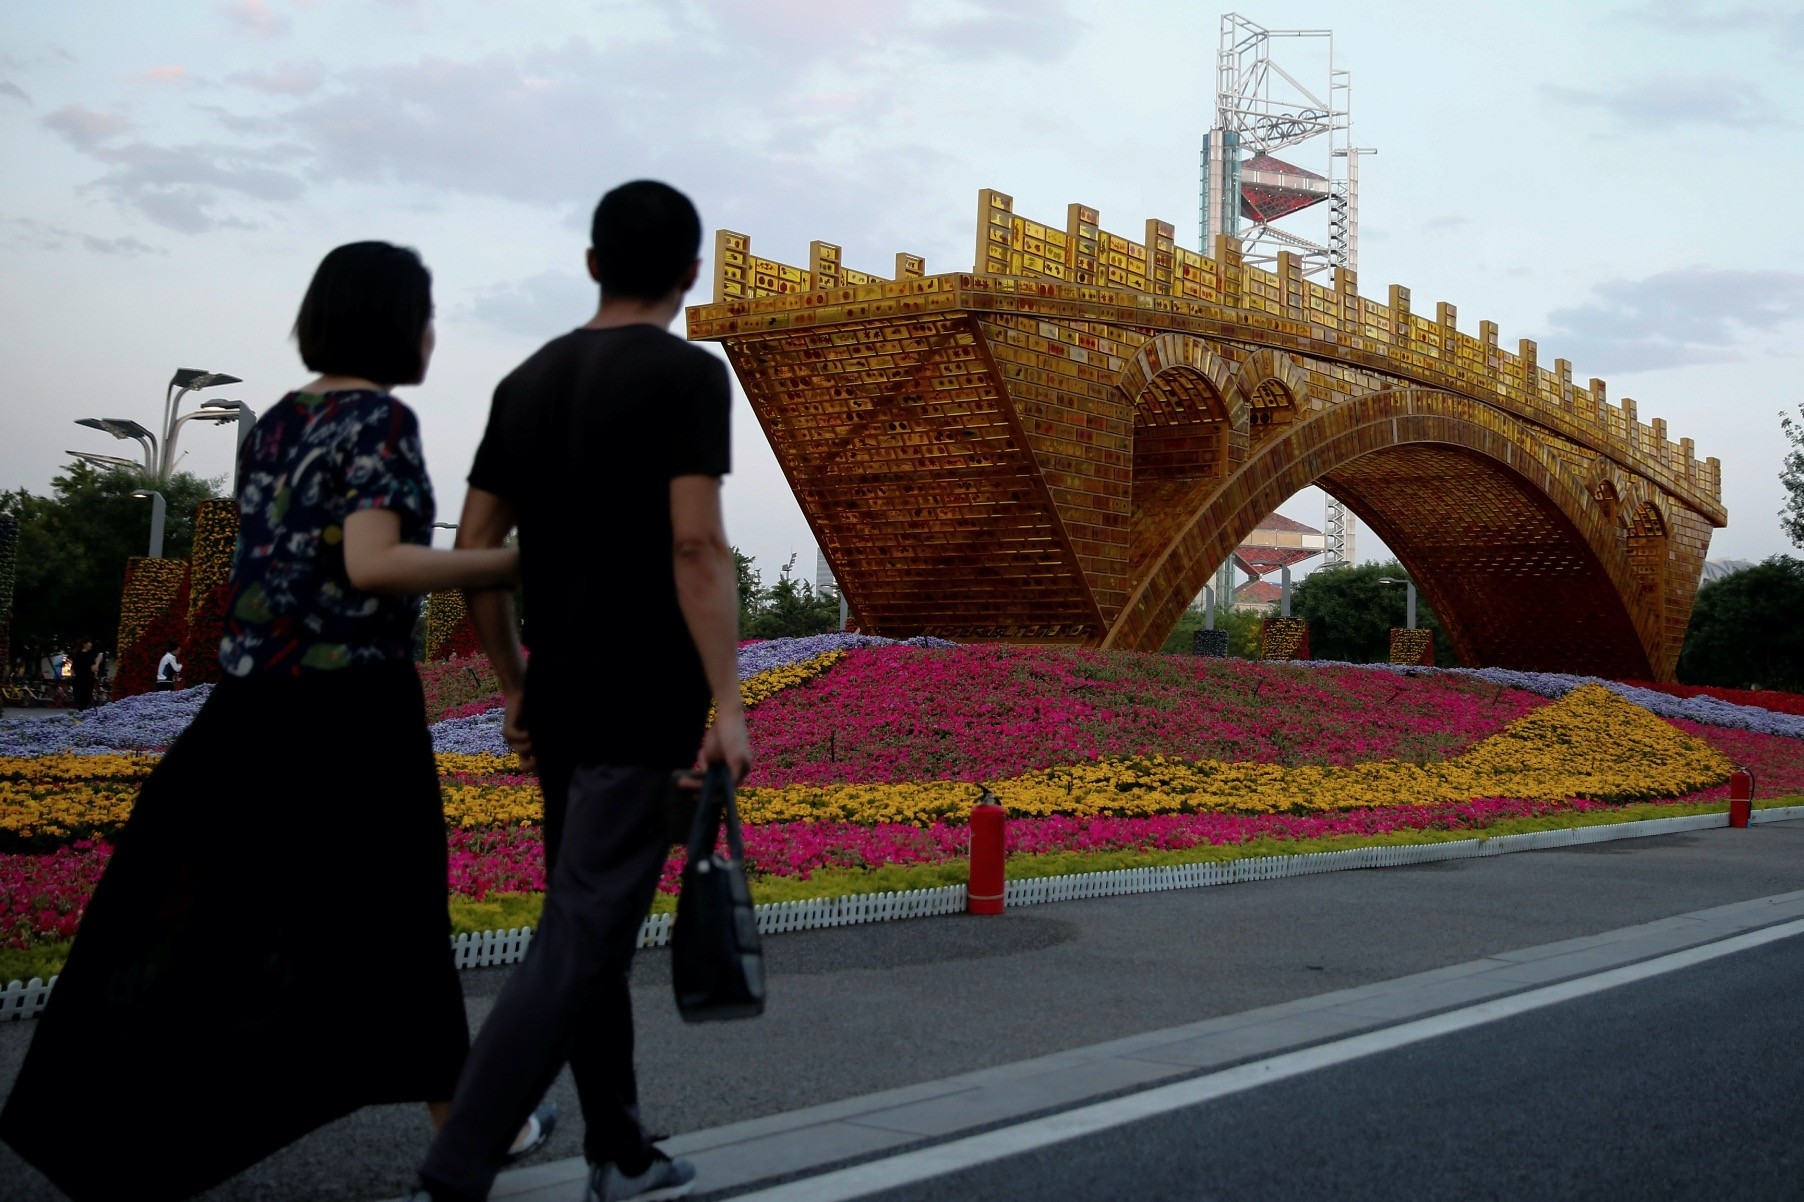 The Golden Bridge on the Silk Road by Artist Shuyong was set up ahead of the Belt and Road Forum in Beijing last year in May.